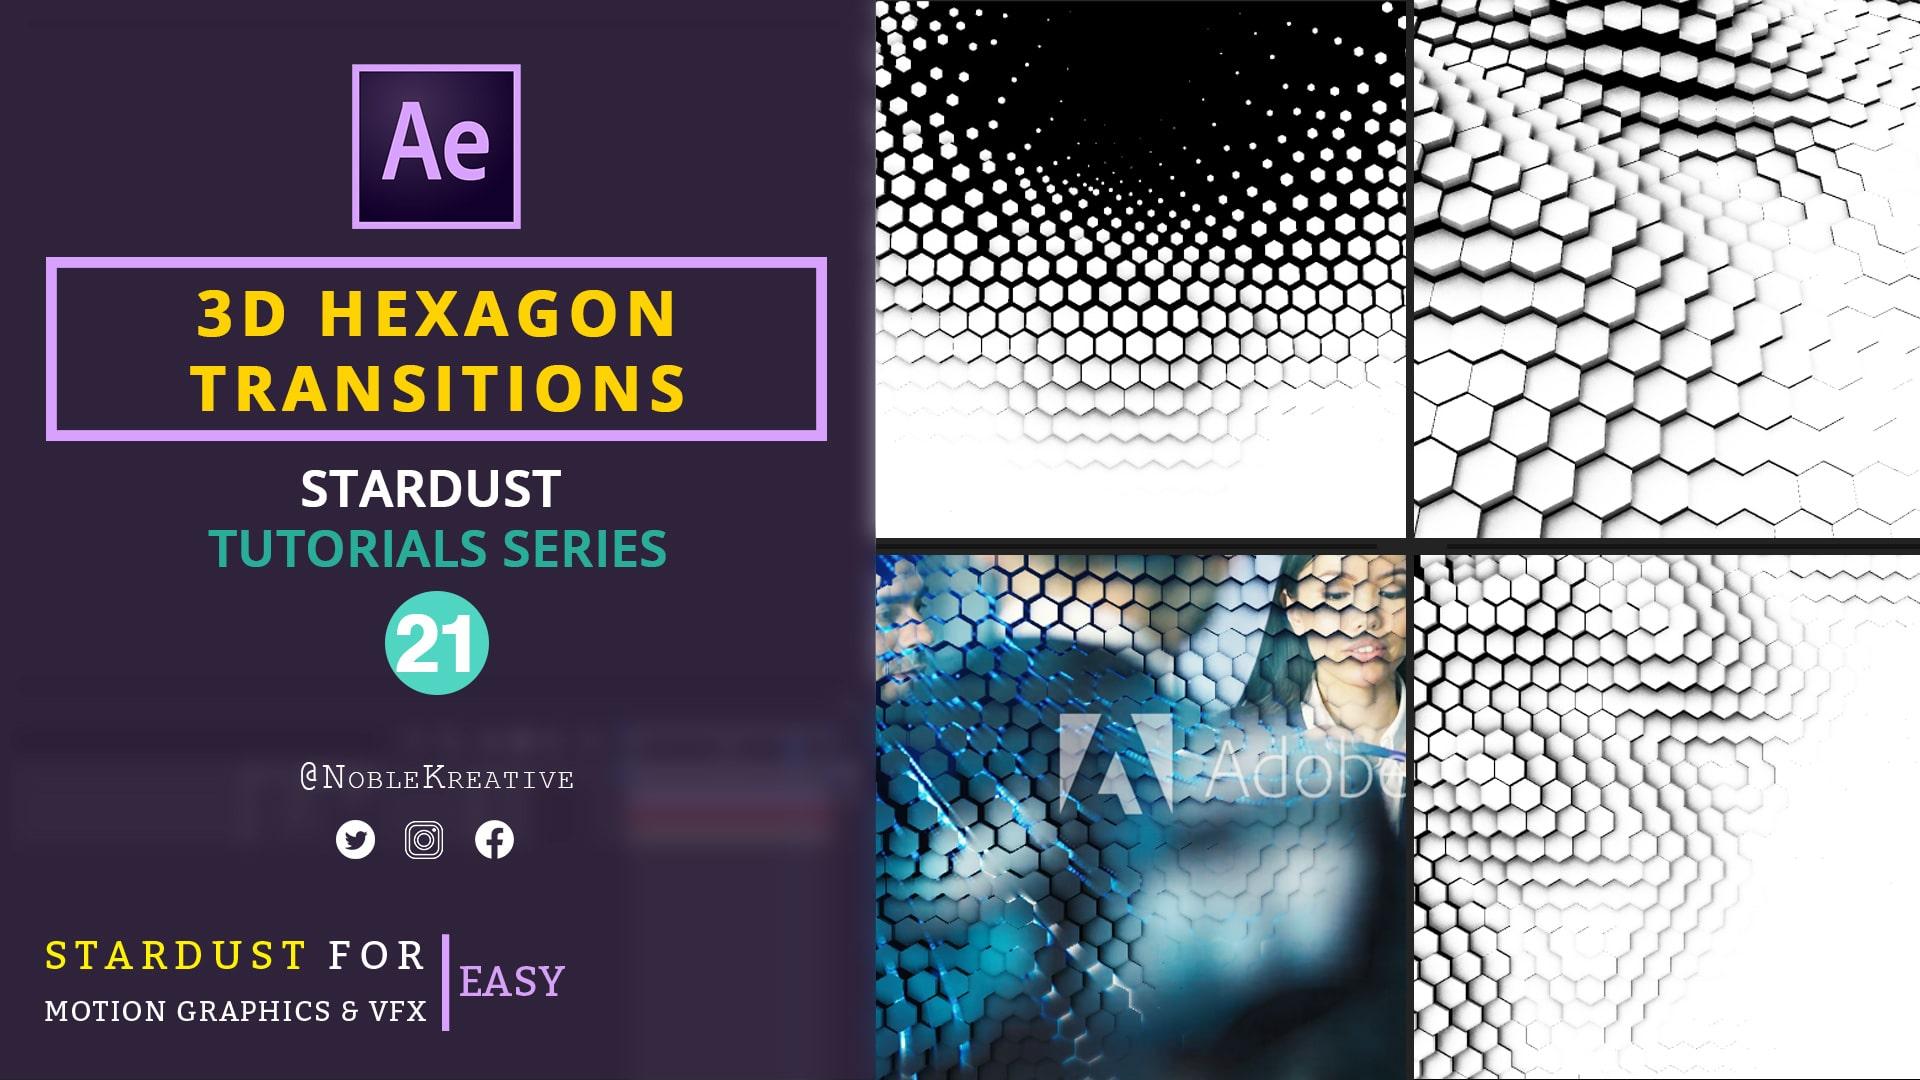 3D Hexagon Transitions ,after effects tutorials , after effects transitions , motion graphics tutorials , motion graphics transitions , 3d transition